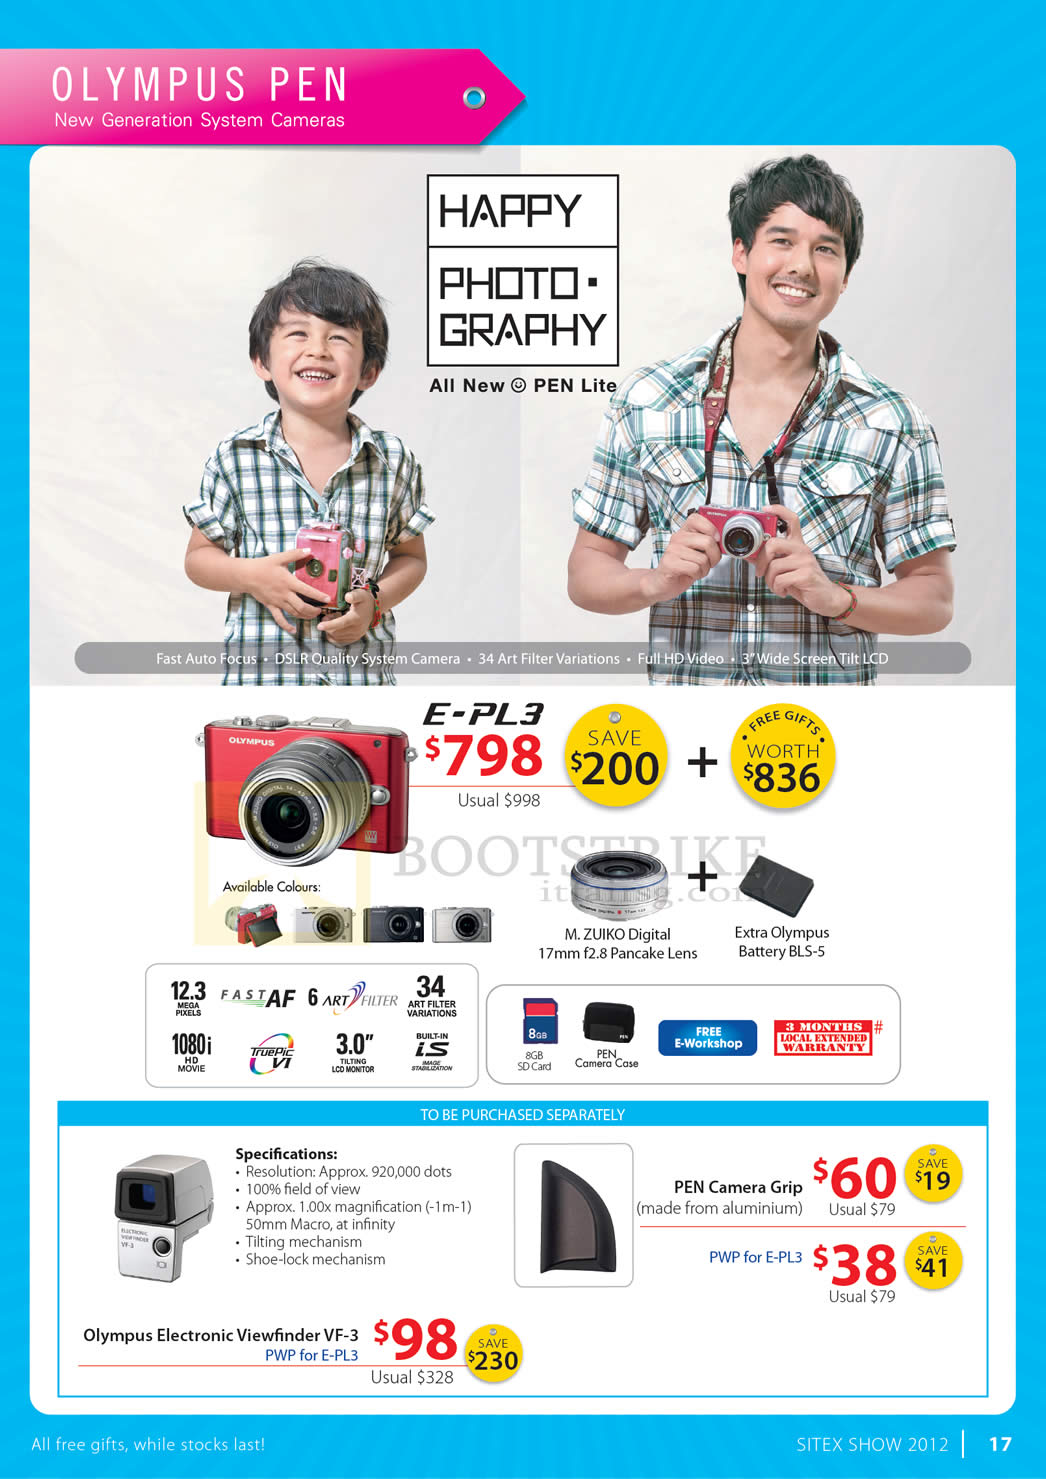 SITEX 2012 price list image brochure of Olympus Digital Camera Pen E-PL3, Specifications, Camera Grip